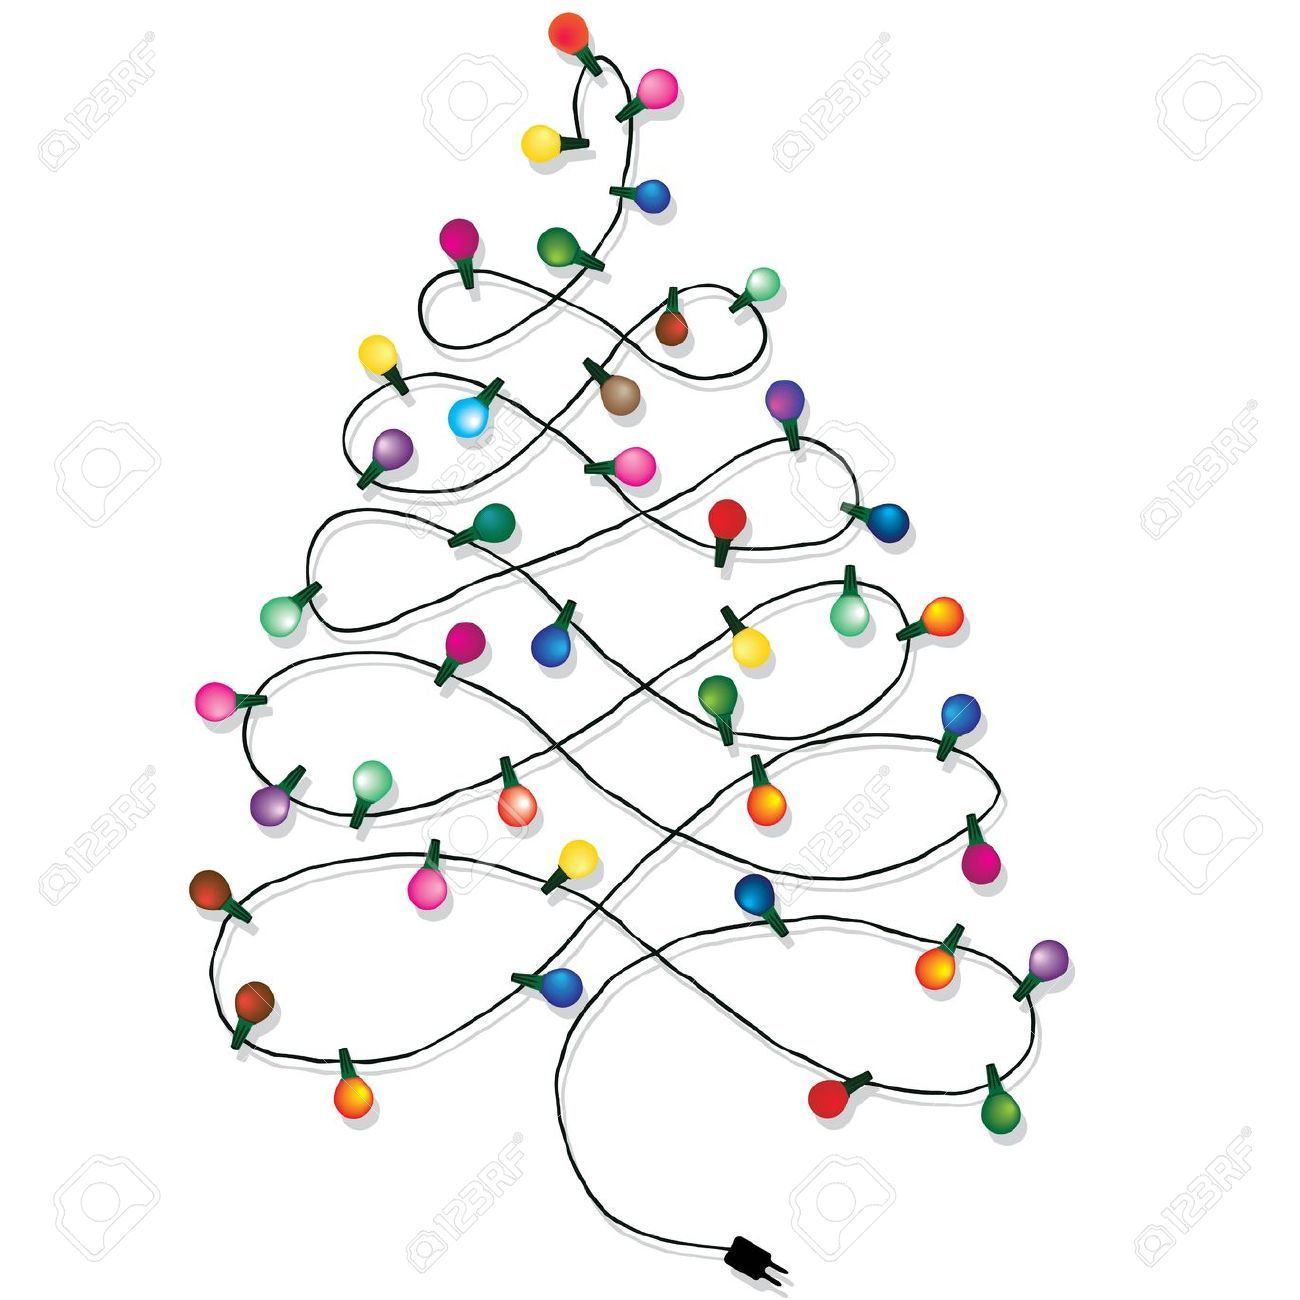 How To String Lights On A Christmas Tree Stunning Christmas Tree Lighting Background  Google Search  Christmas Review